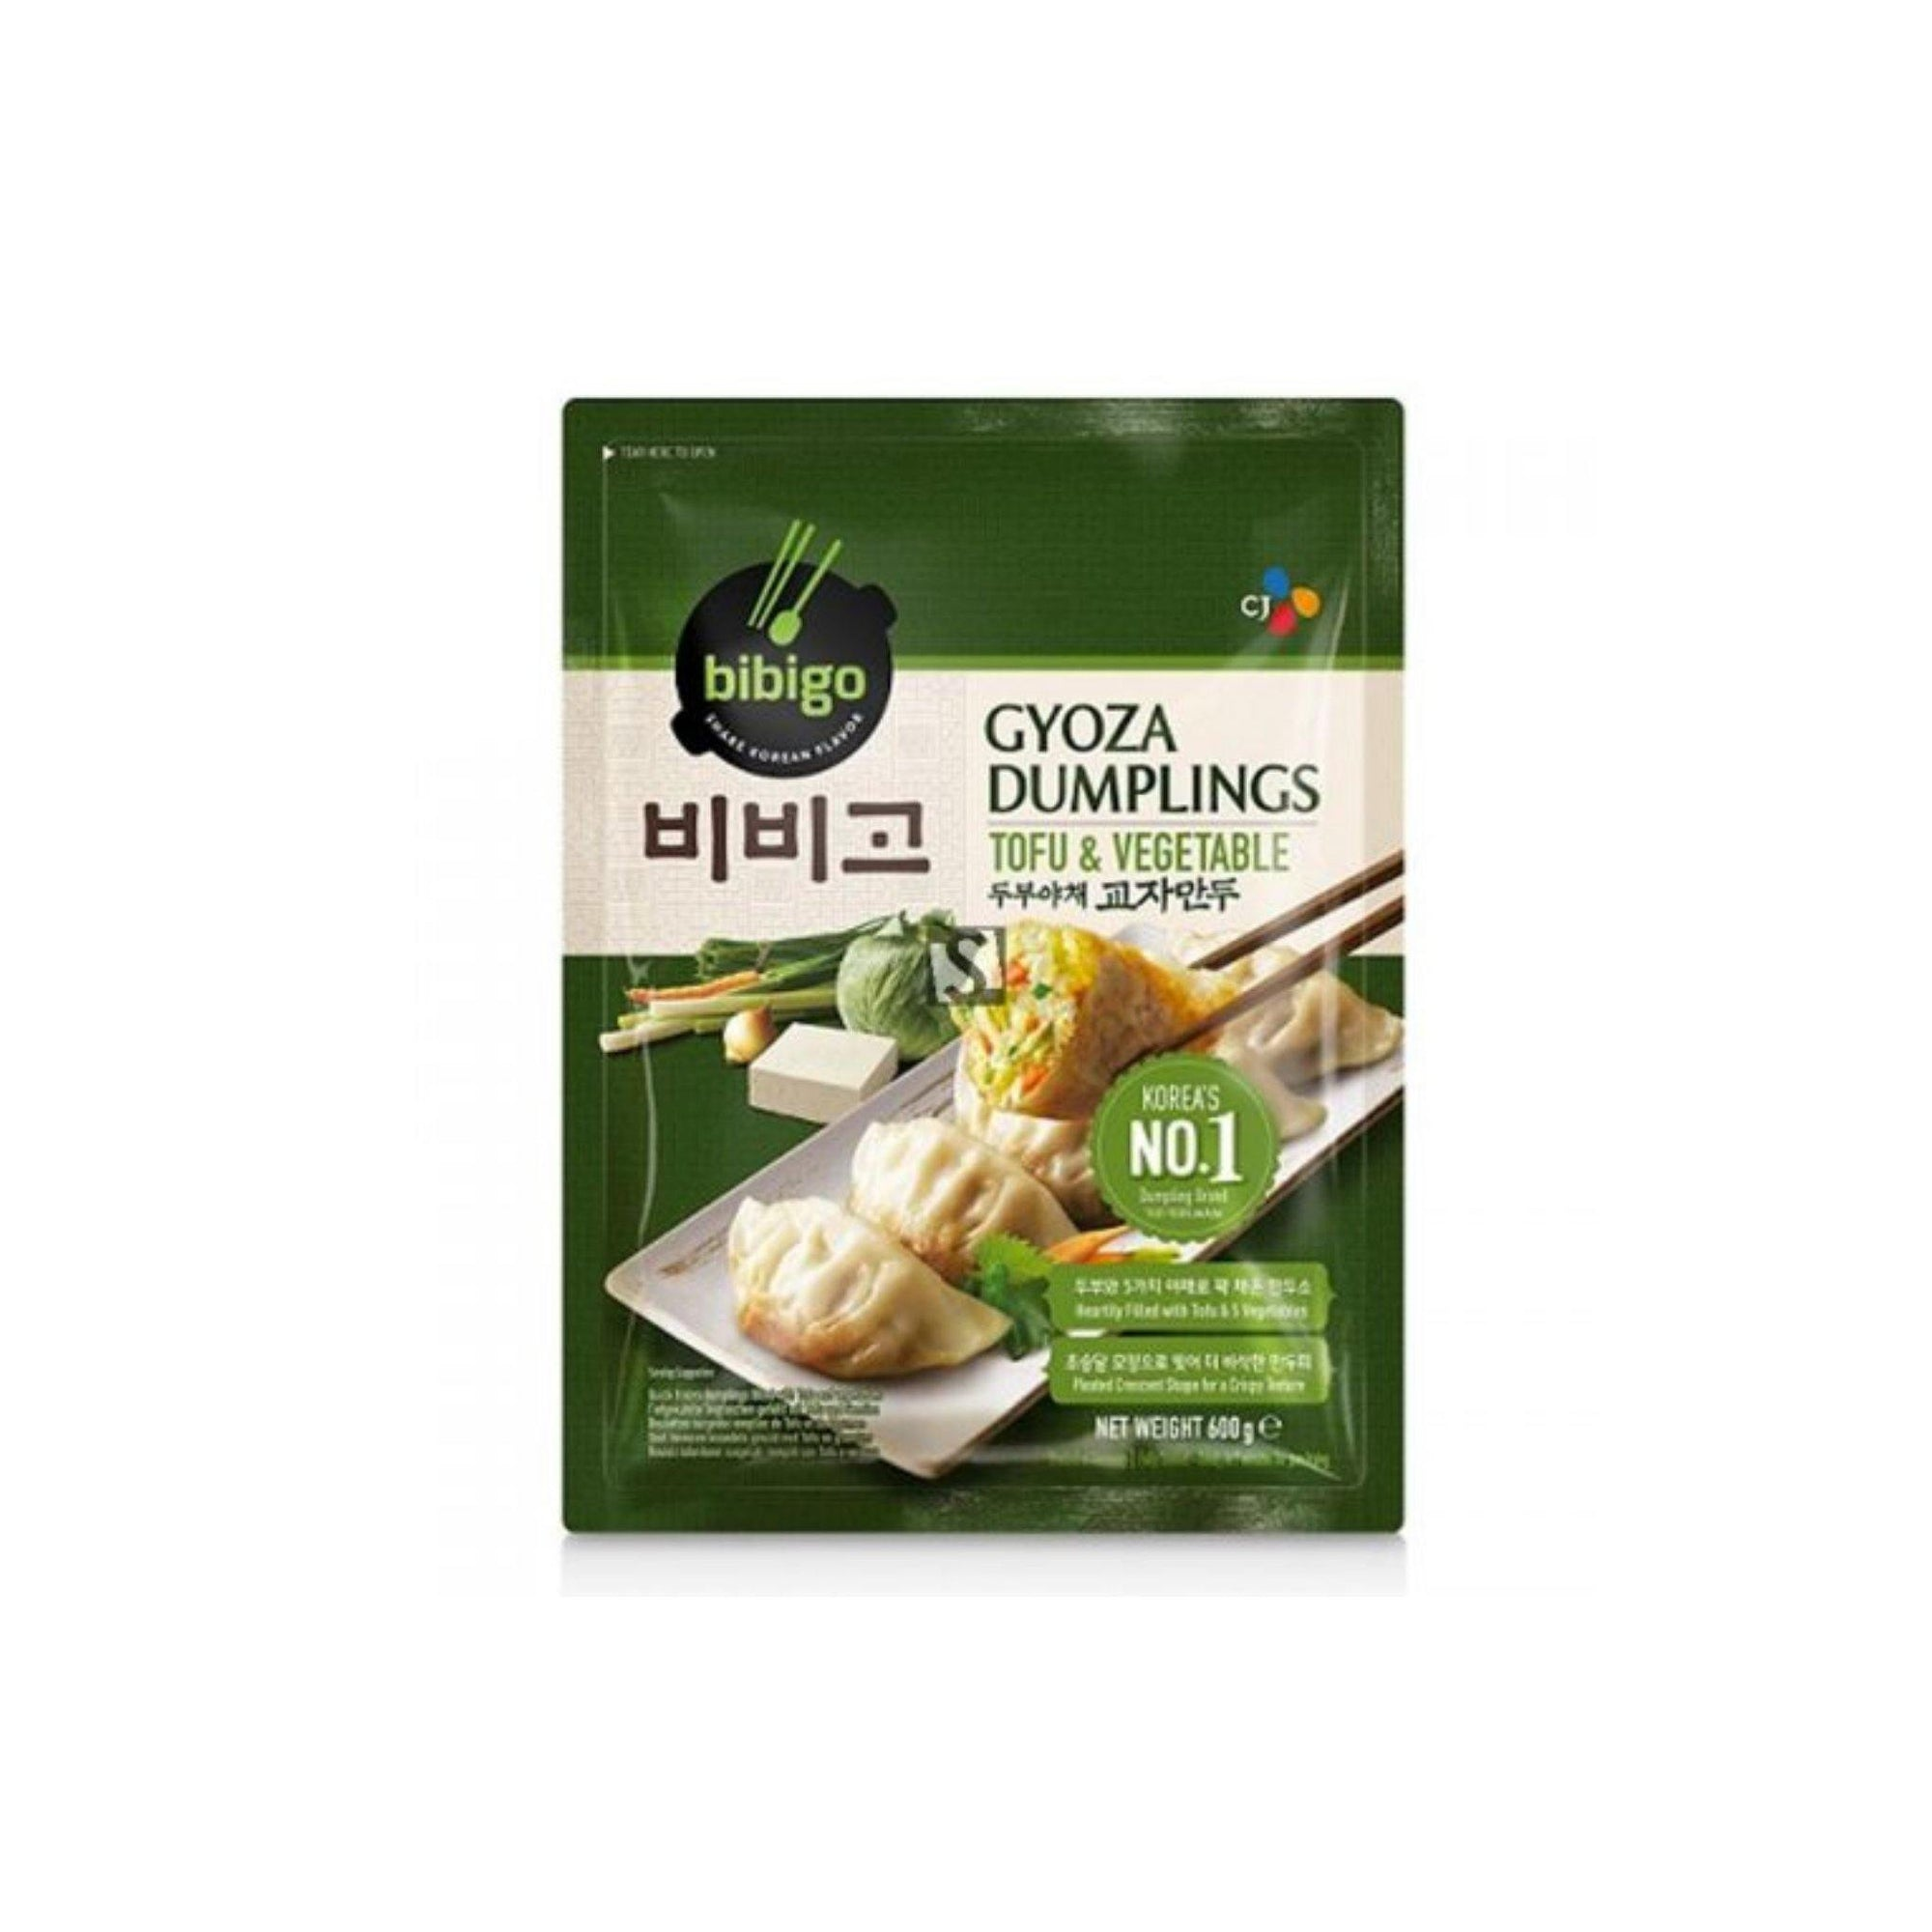 Bibigo Tofu and Veg Gyoza Dumpling 600G - Asian Harvest